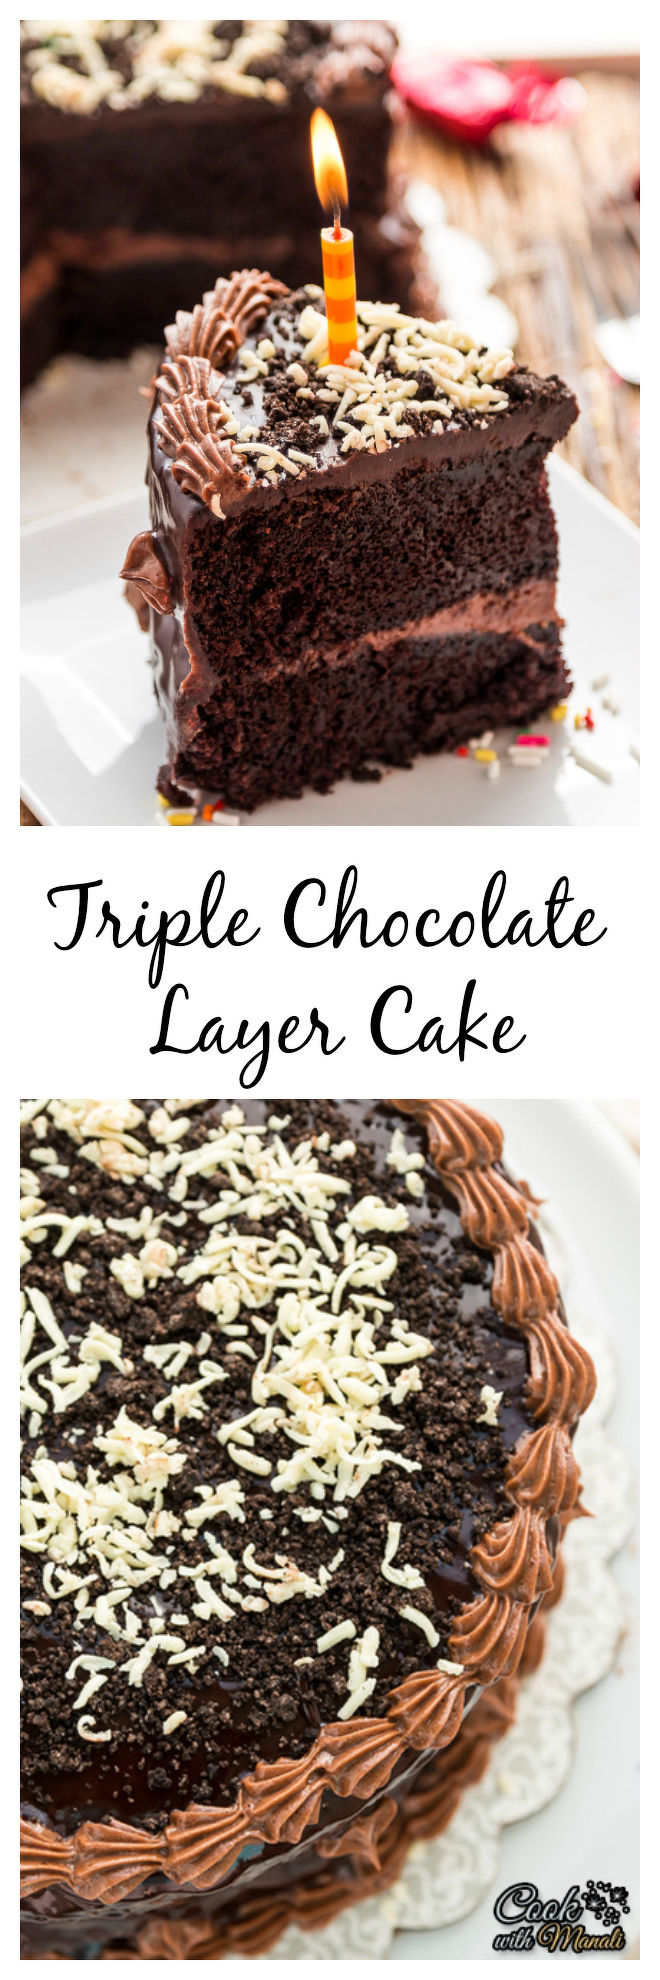 Triple Chocolate Layer Cake Collage-nocwm